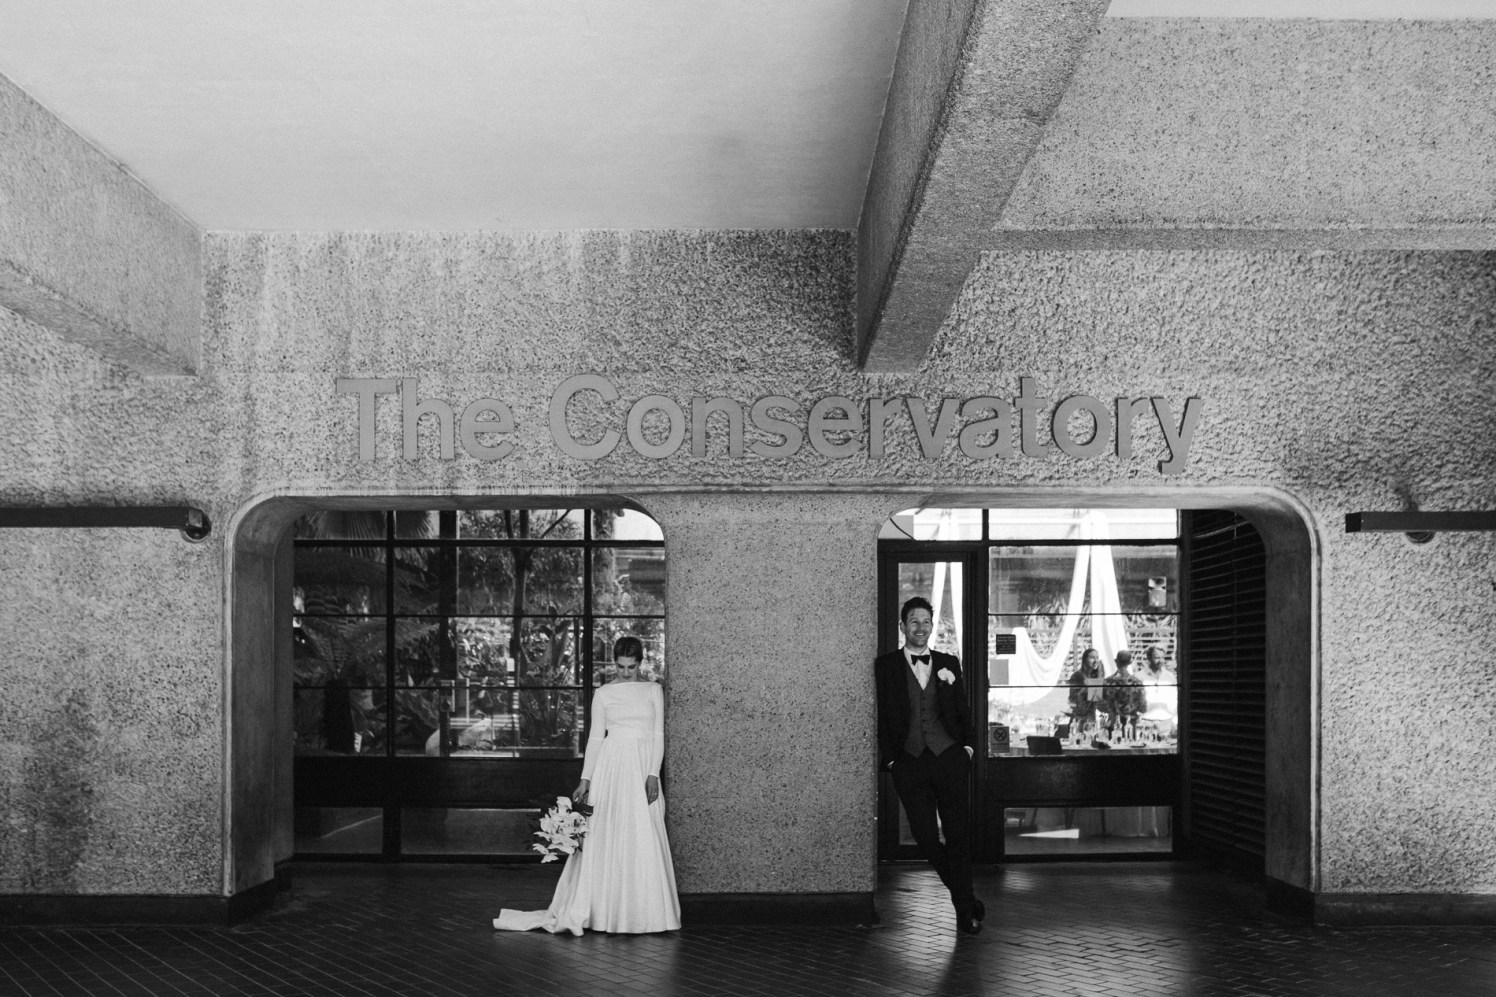 stephanie-green-weddings-barbican-conservatory-wedding-london-architecture-lover-391